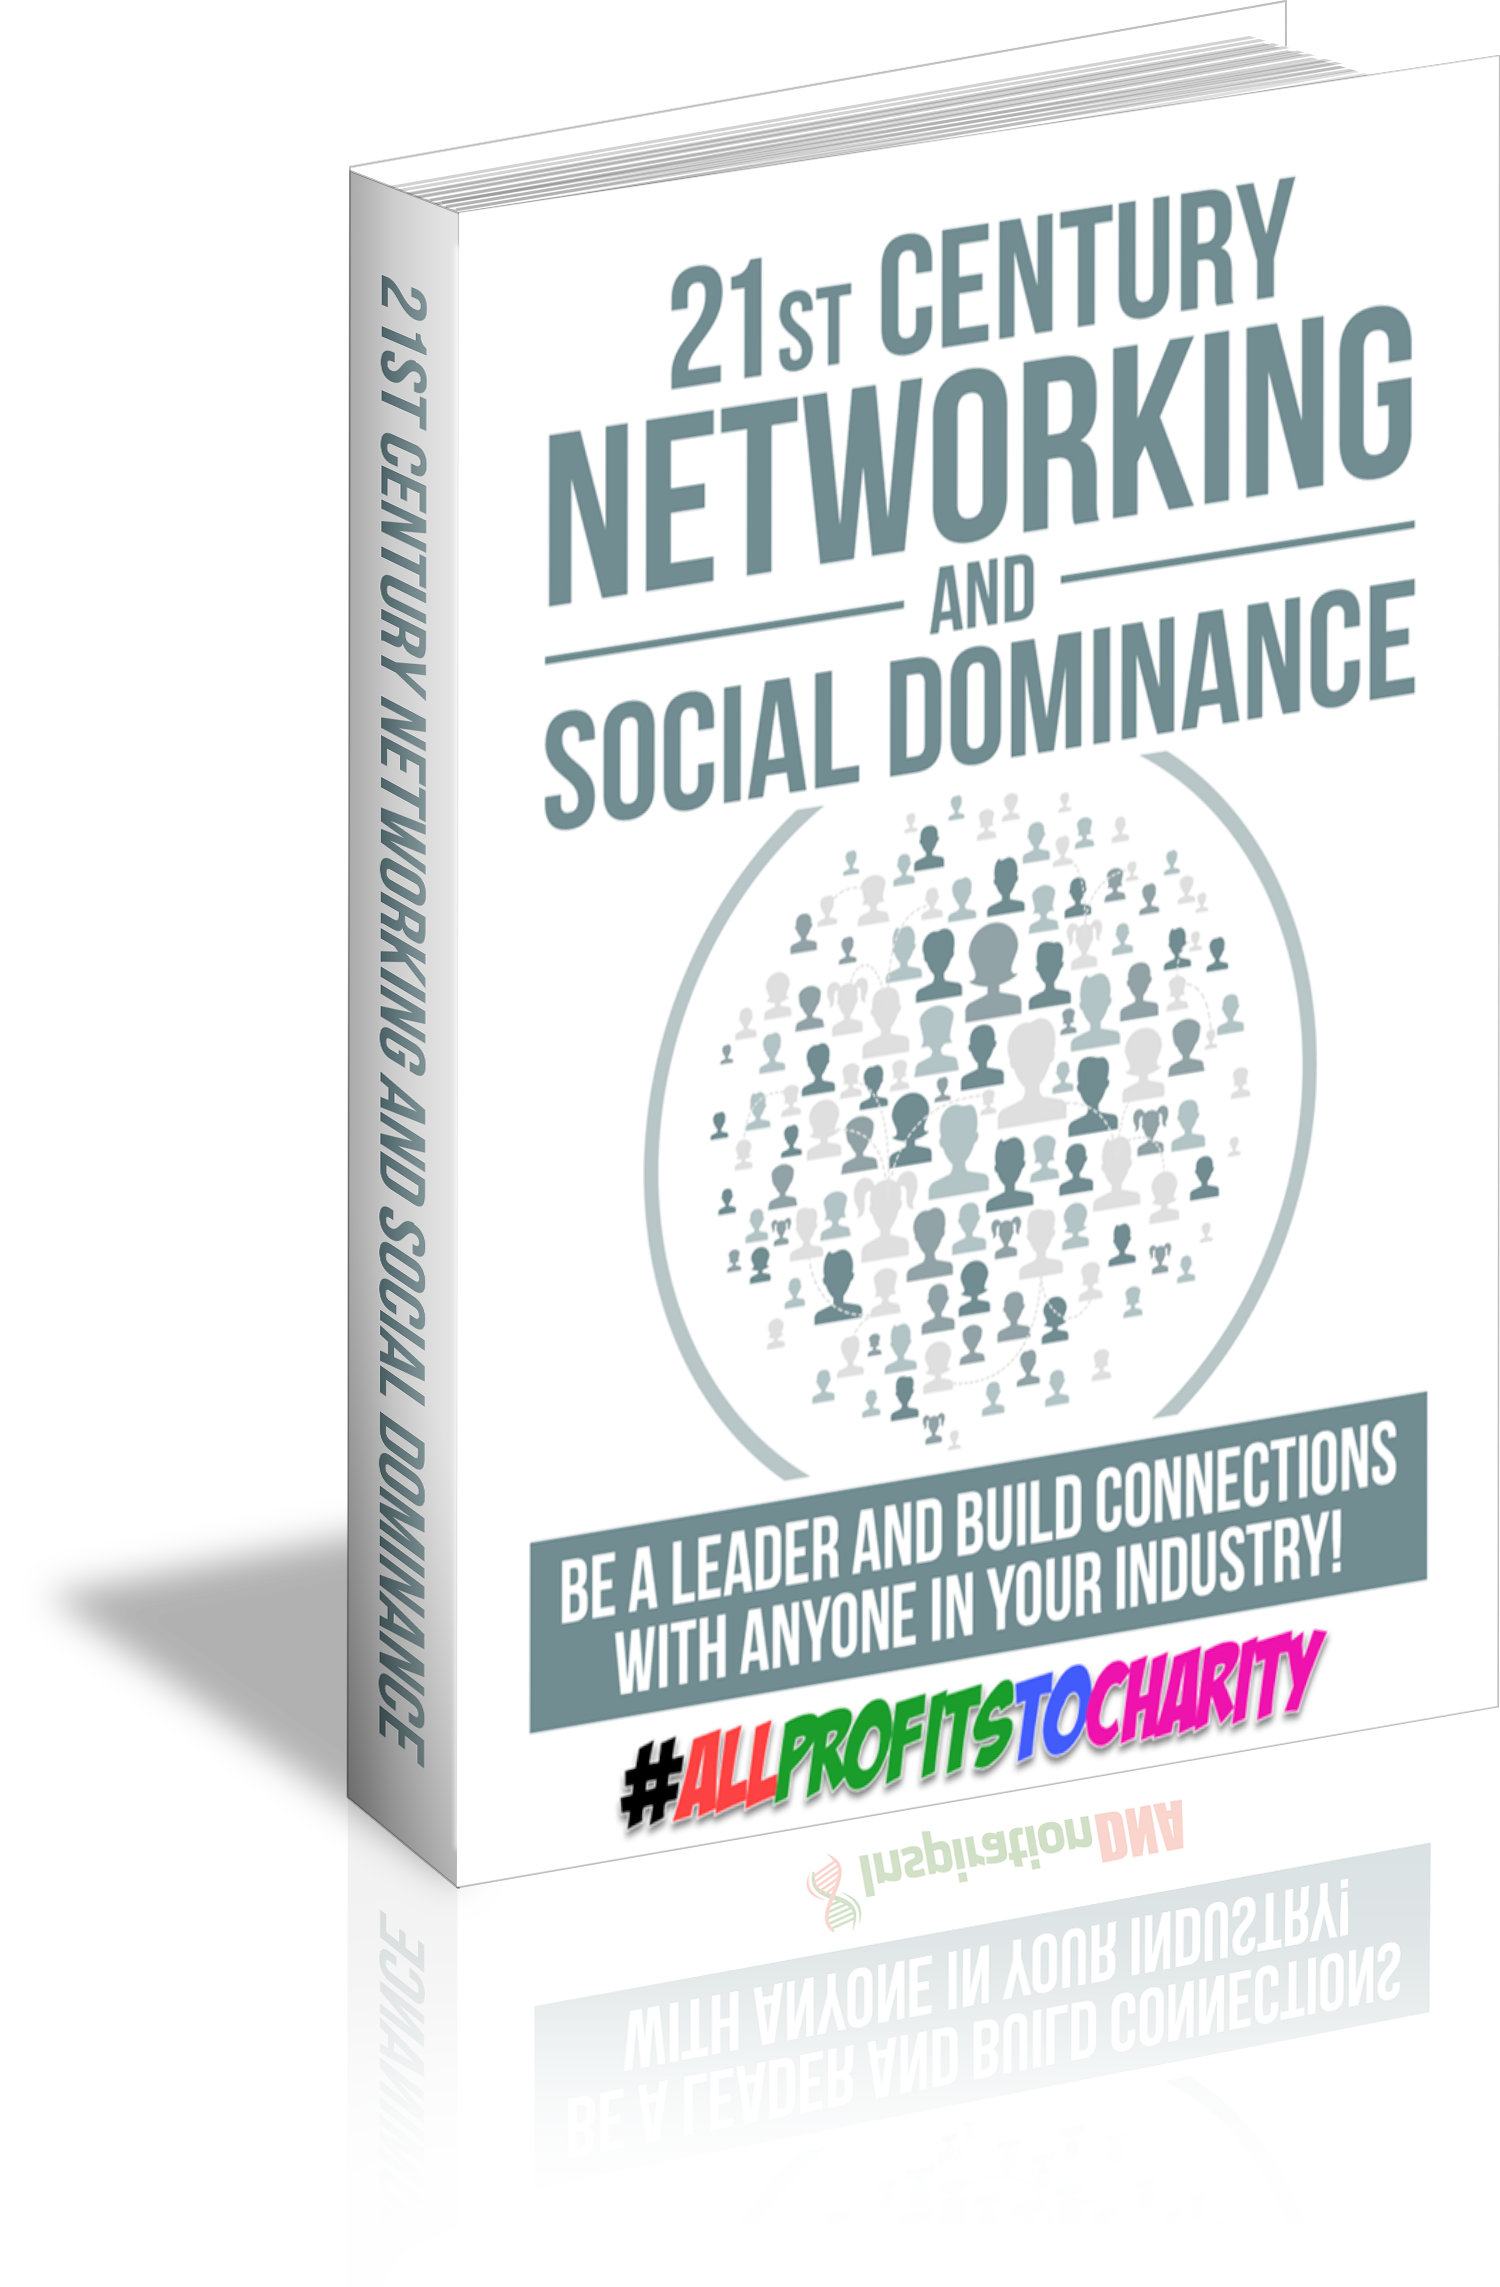 21st Century Networking And Social Dominance cover